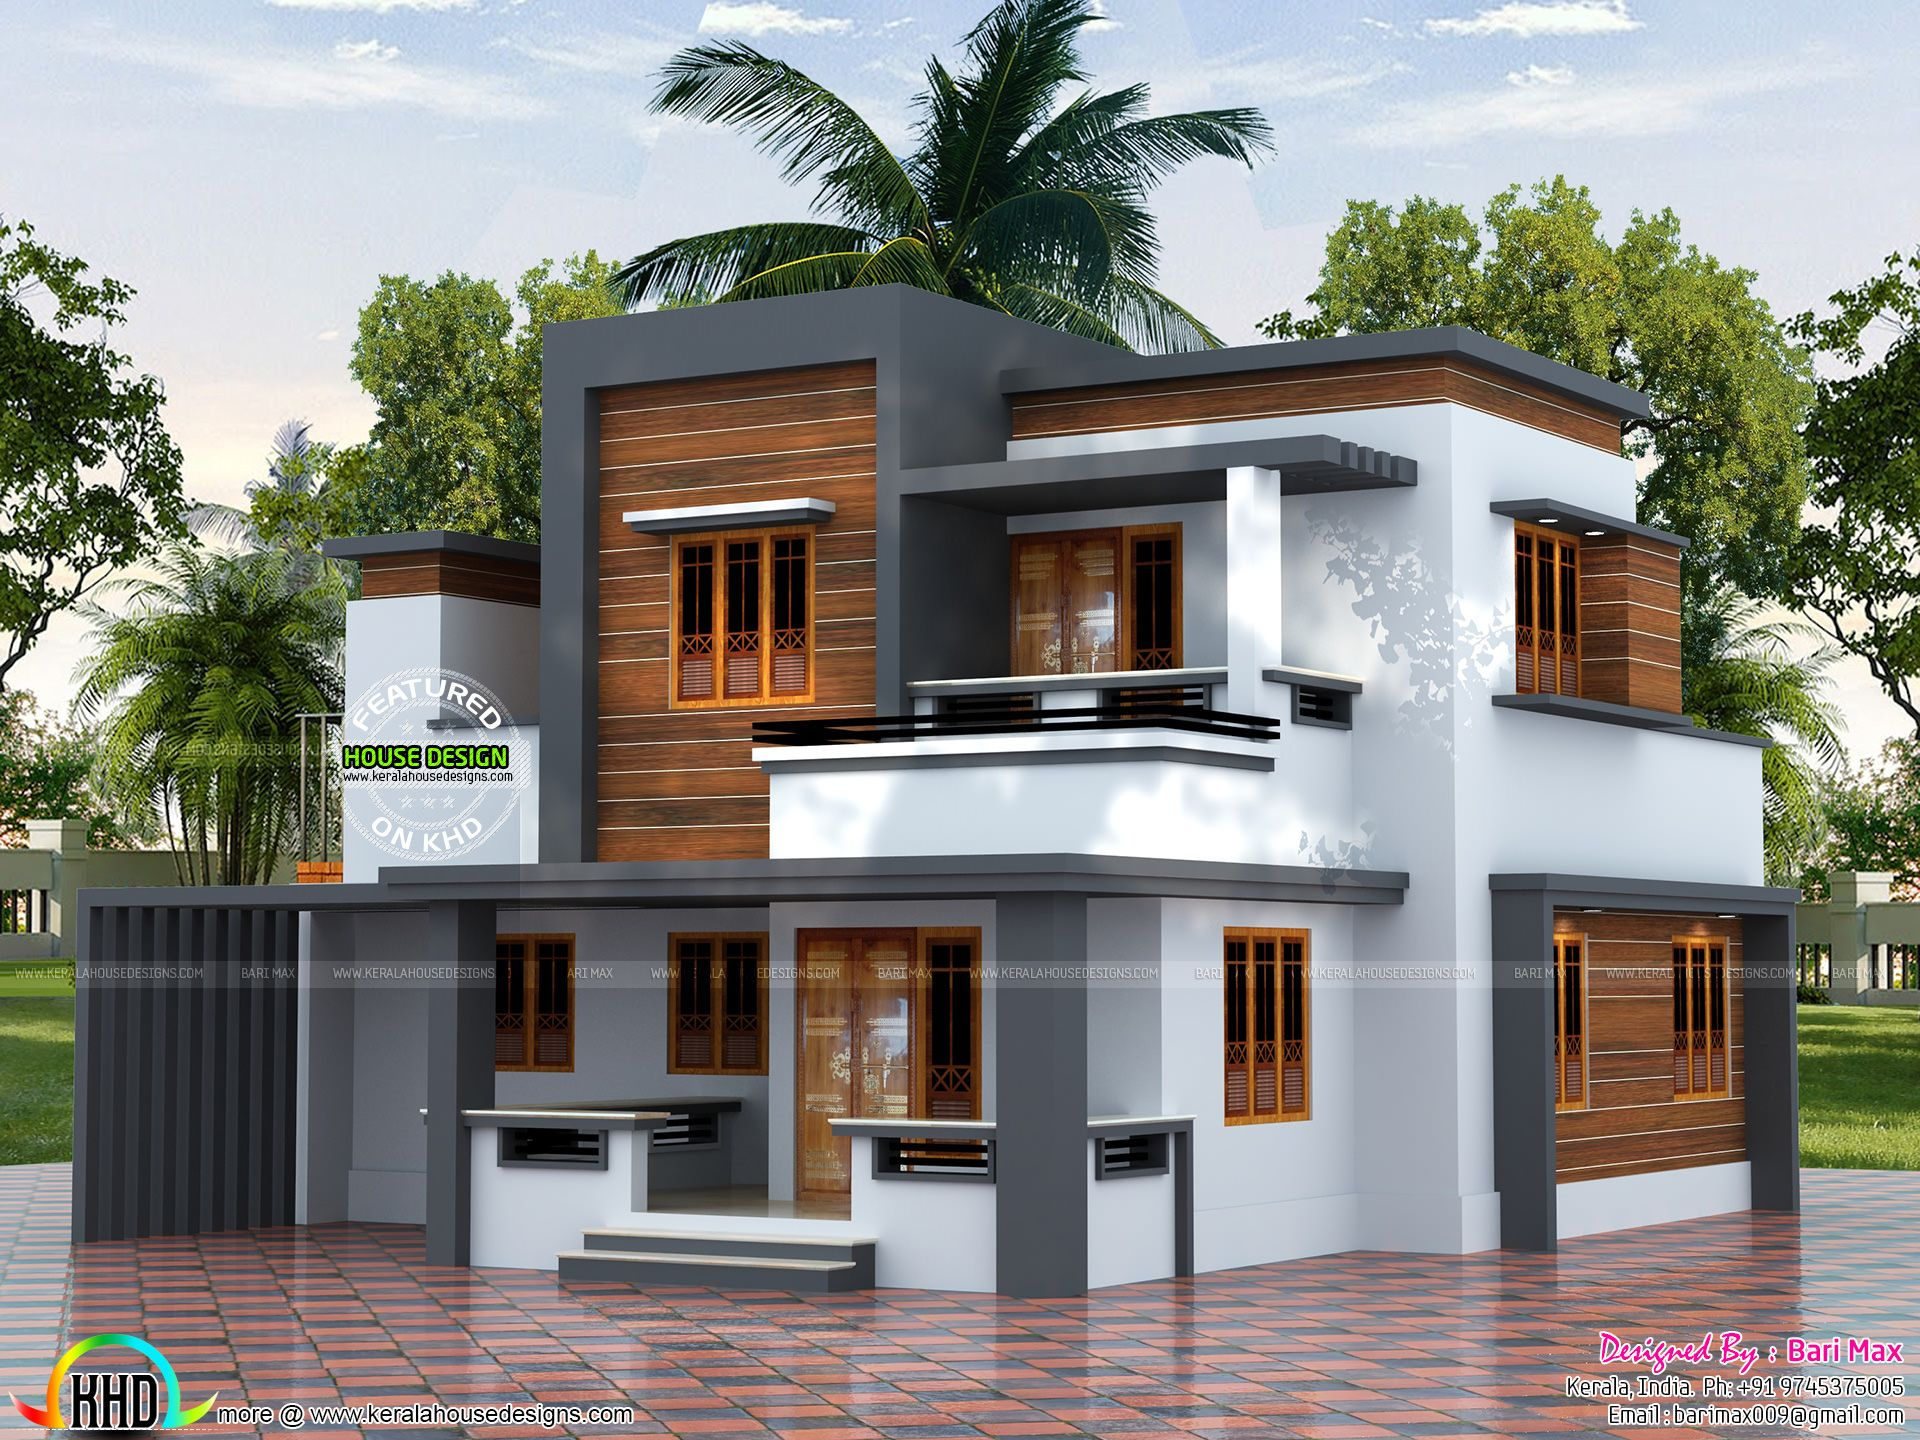 U20b922.5 lakh cost estimated modern house projects to try